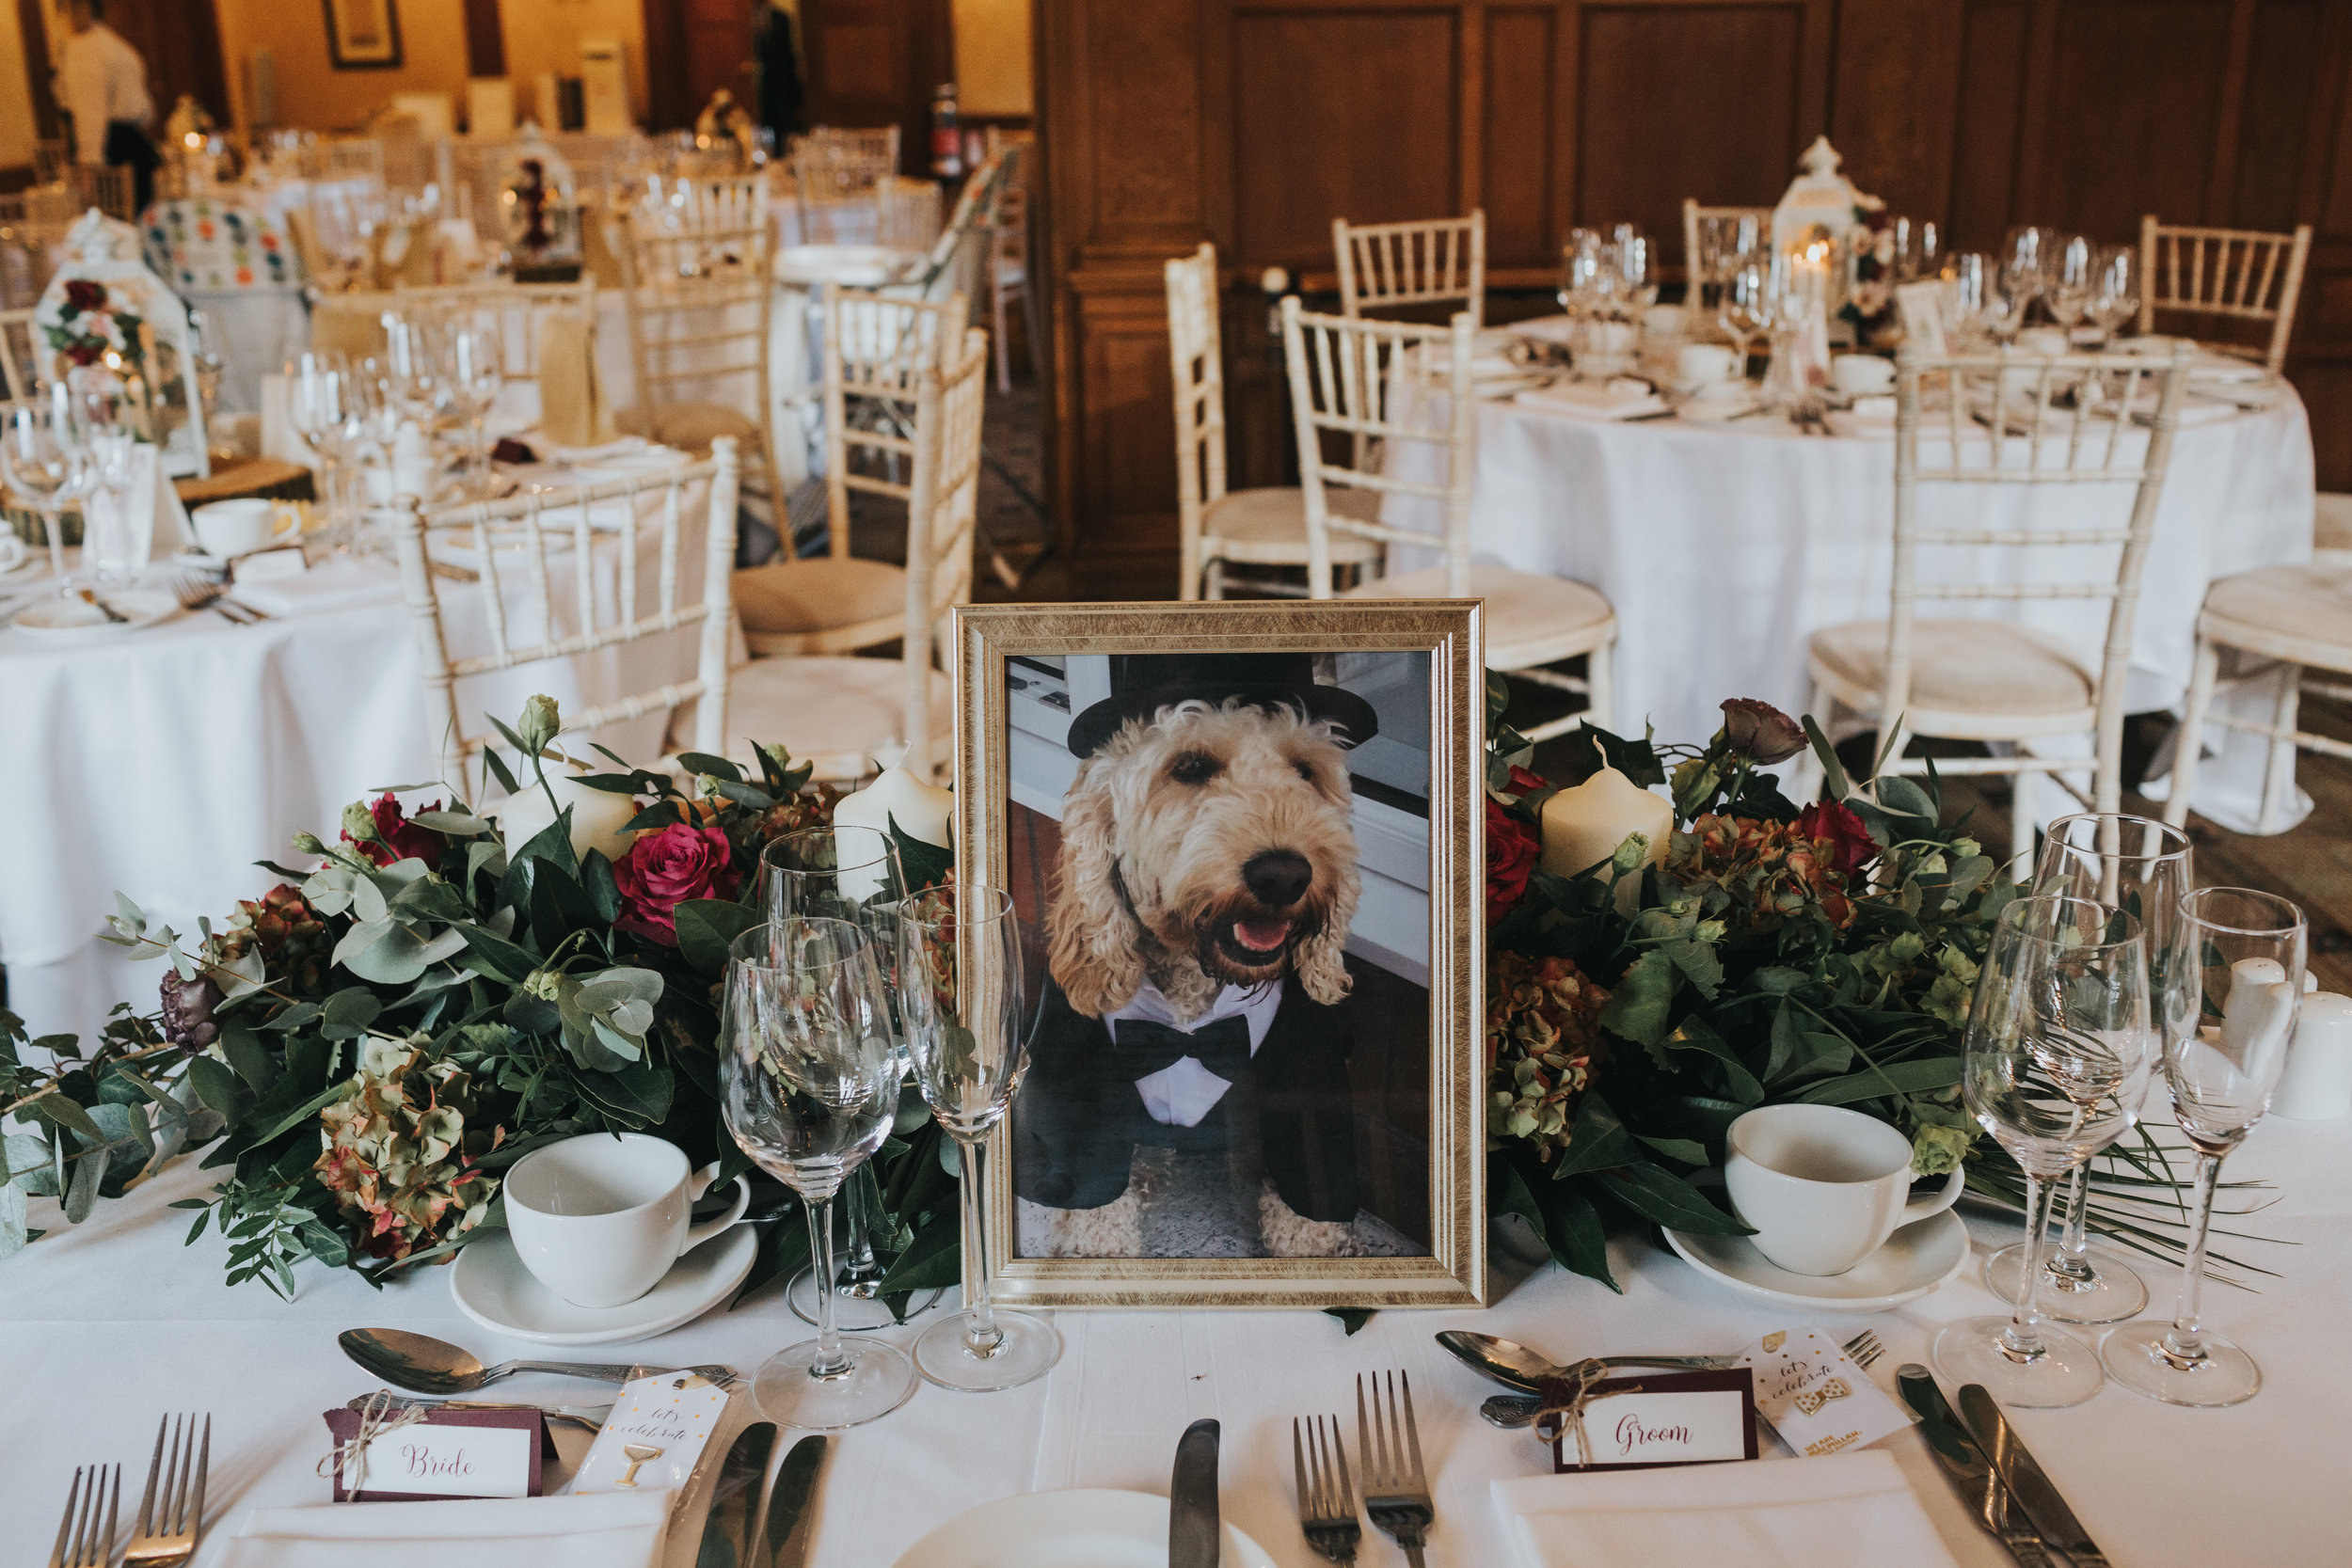 A photograph of the bride and grooms dog awaits them at their table.